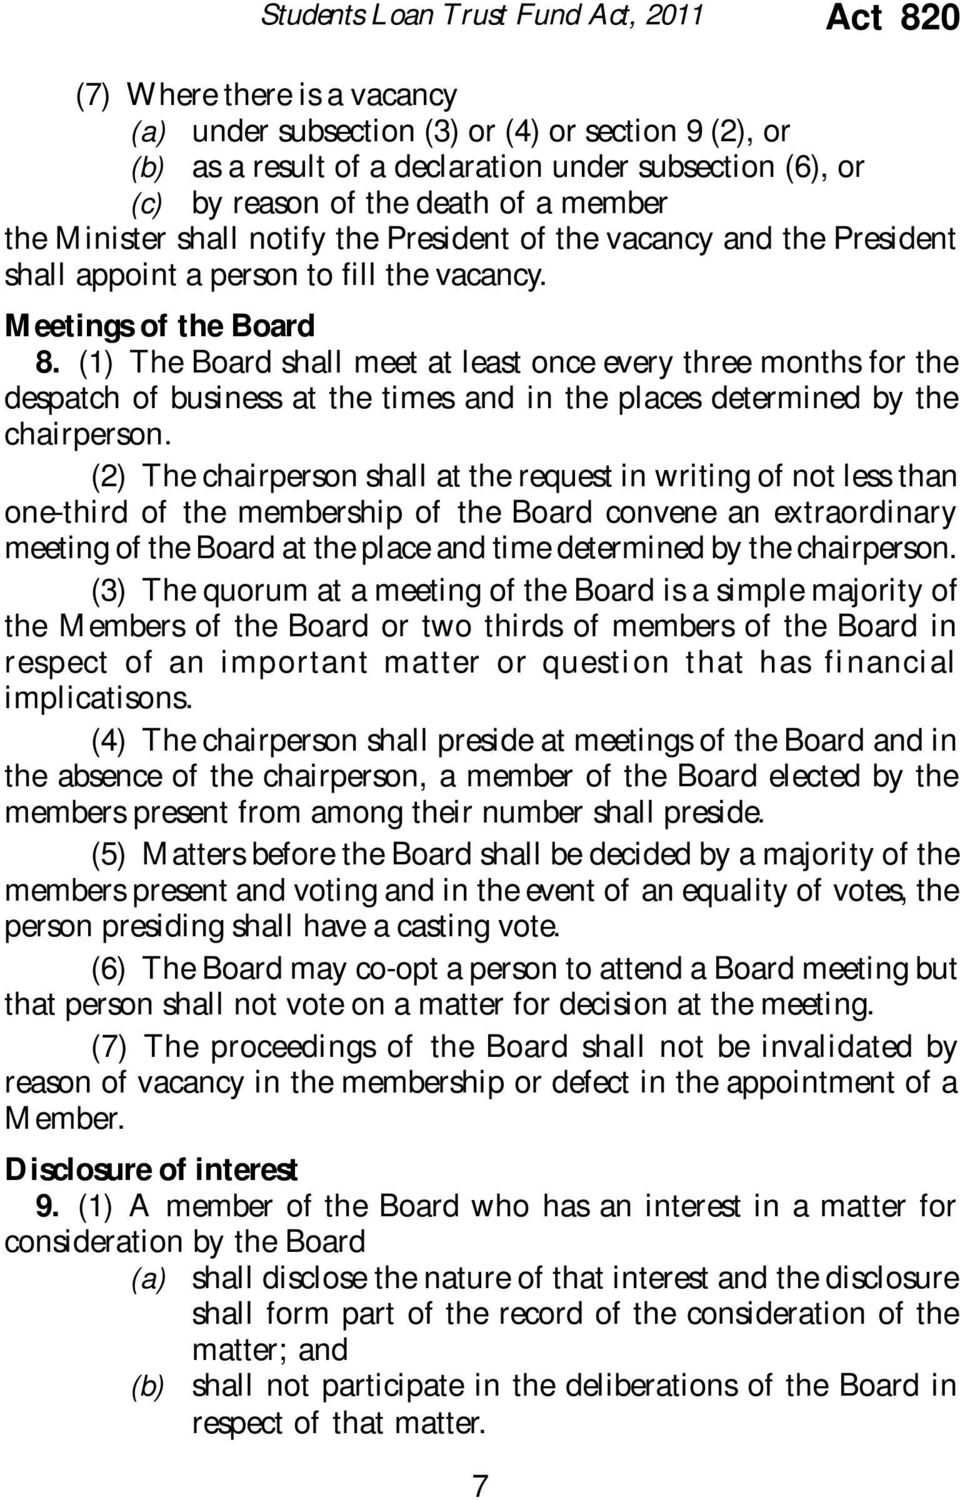 (1) The Board shall meet at least once every three months for the despatch of business at the times and in the places determined by the chairperson.